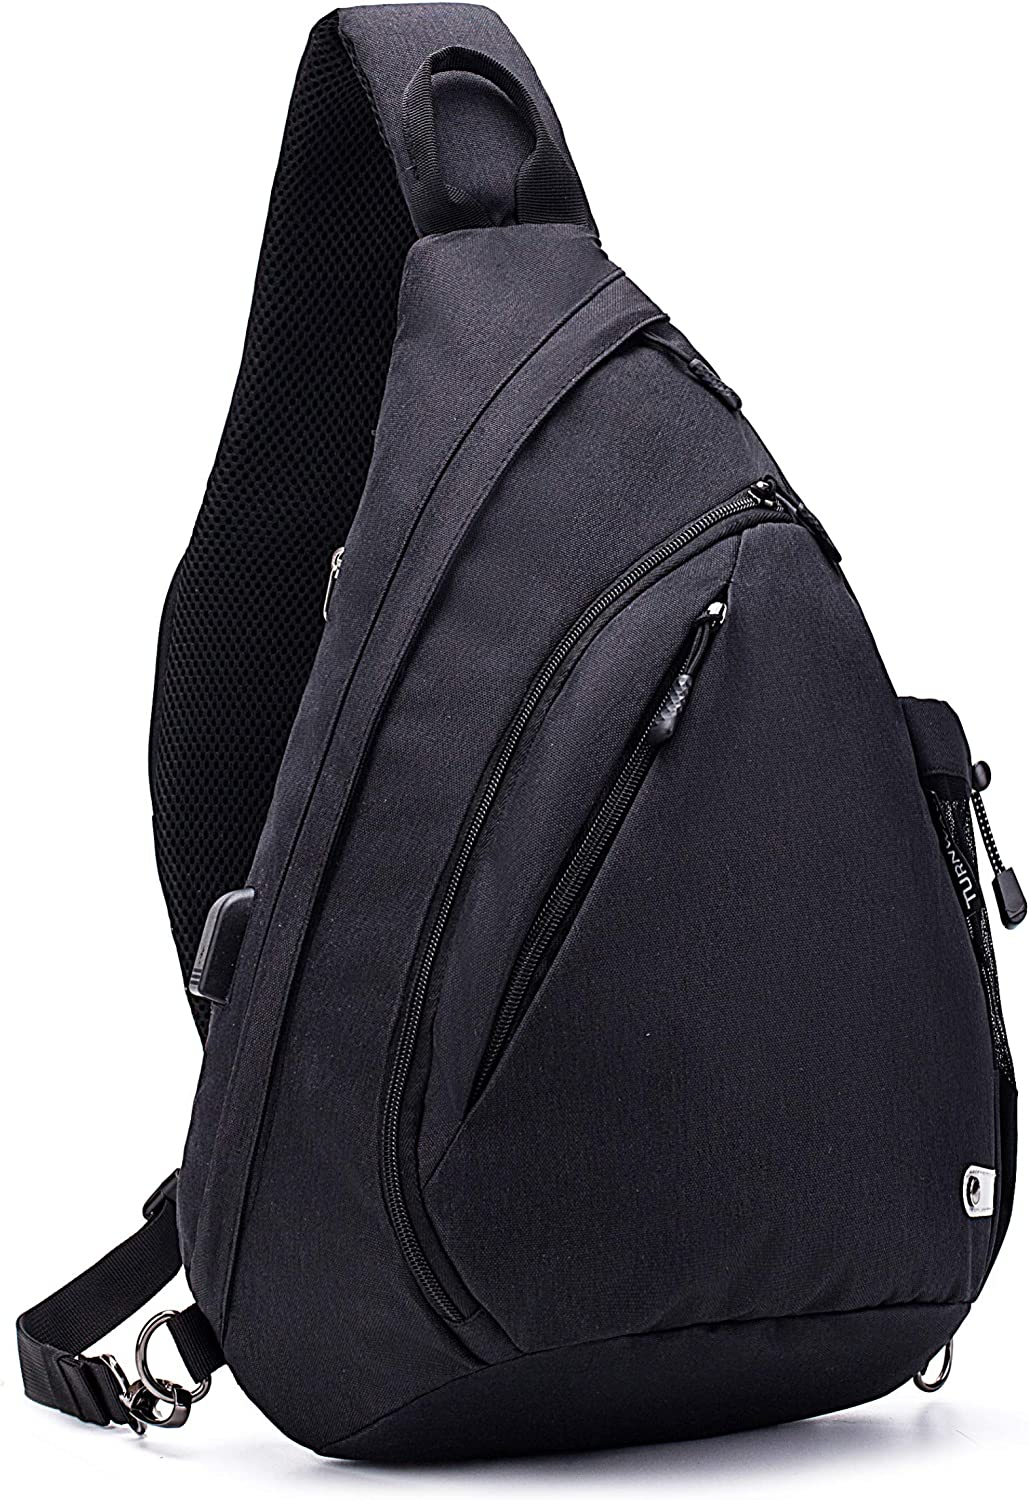 TurnWay Water-Proof Sling Backpack/Crossbody Bag/Shoulder Bag for Travel, Hiking, Cycling, Camping for Women & Men